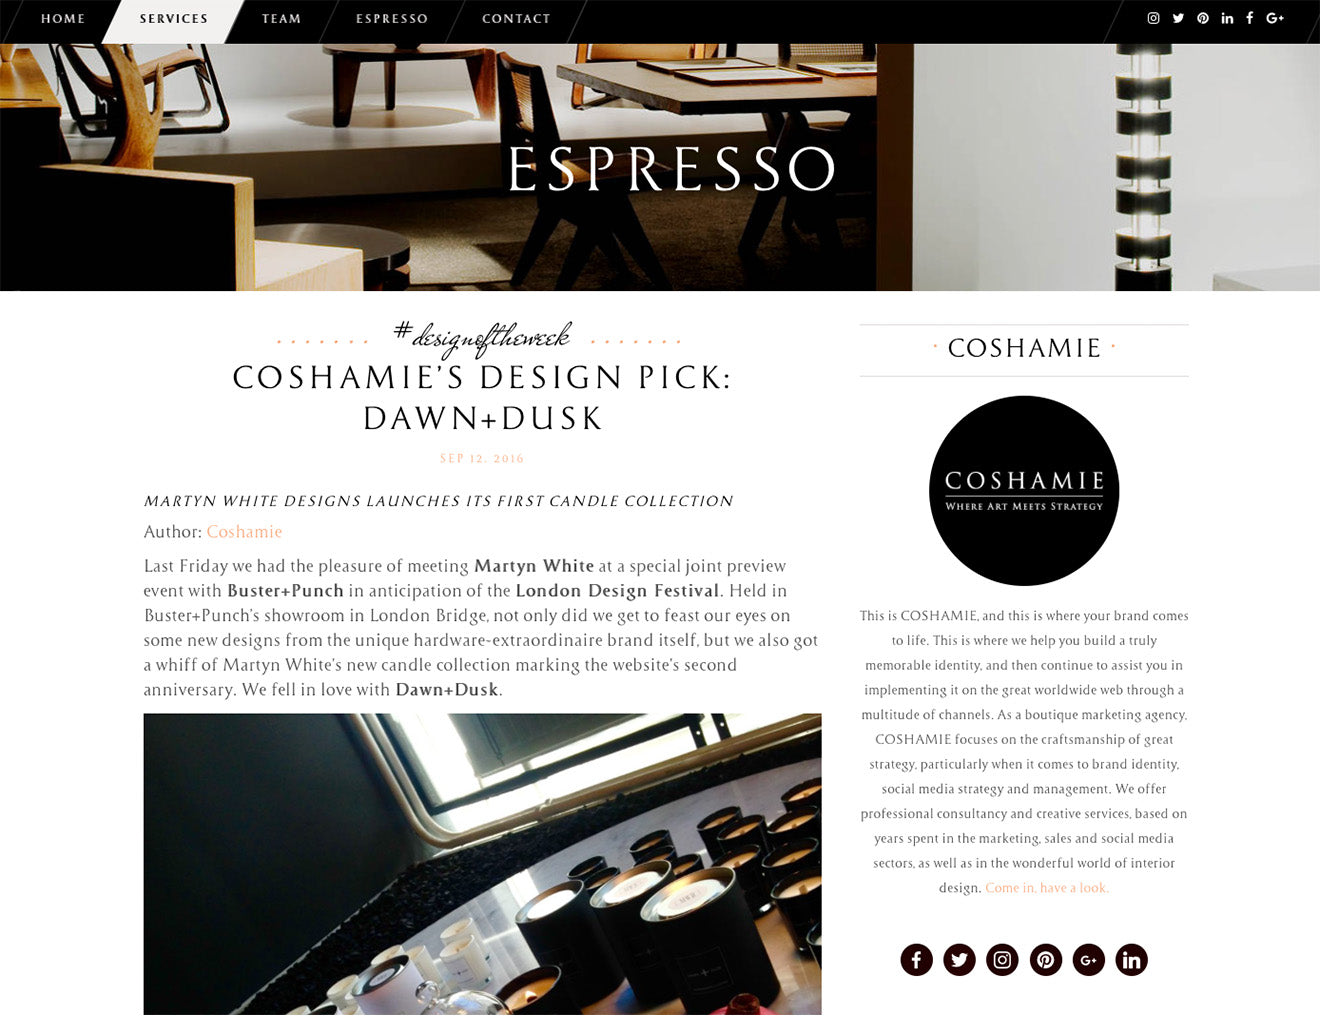 Coshamie design pick of the week Dawn + Dusk